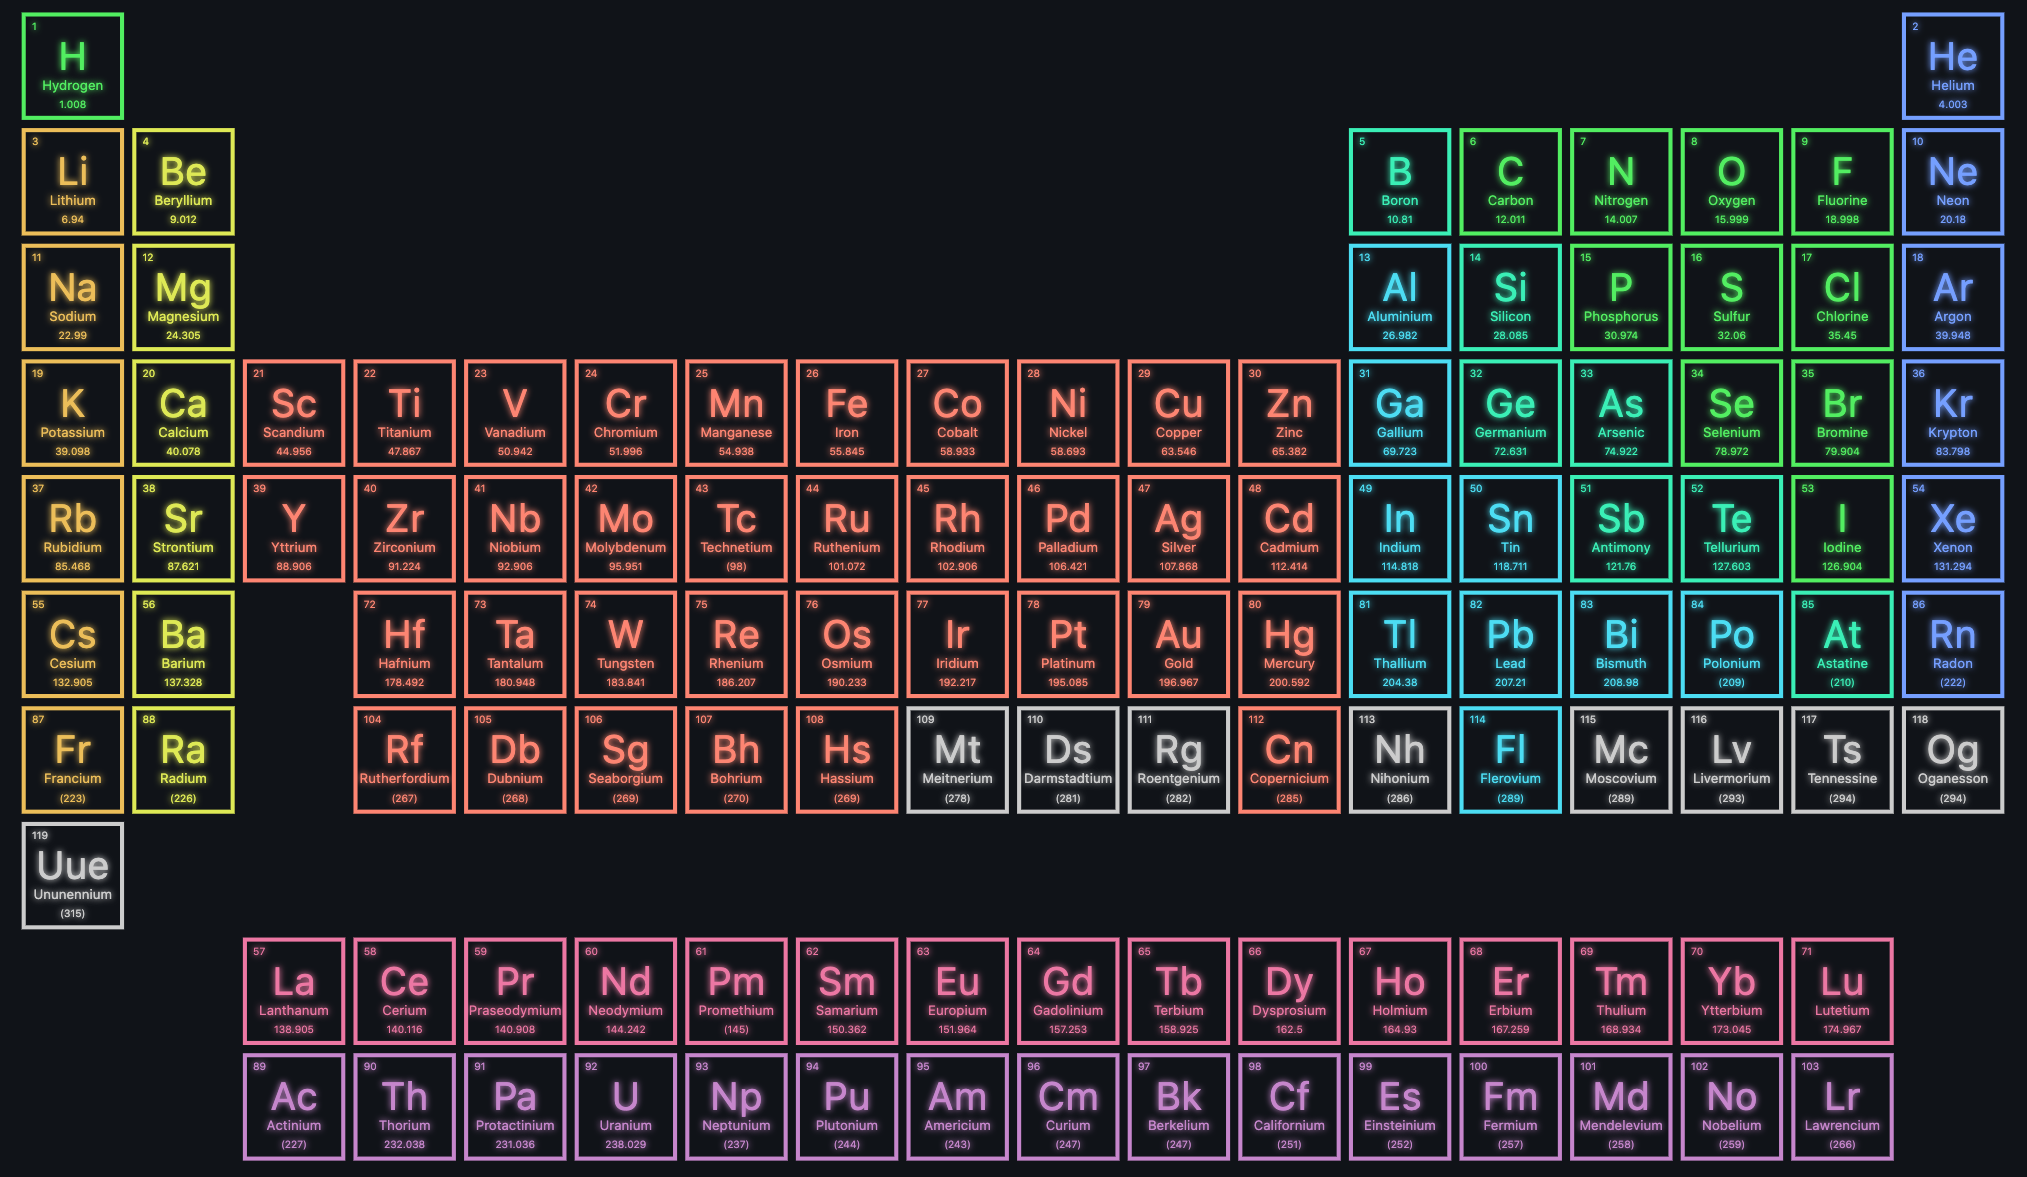 Periodic table rendered using Flutter Layout Grid